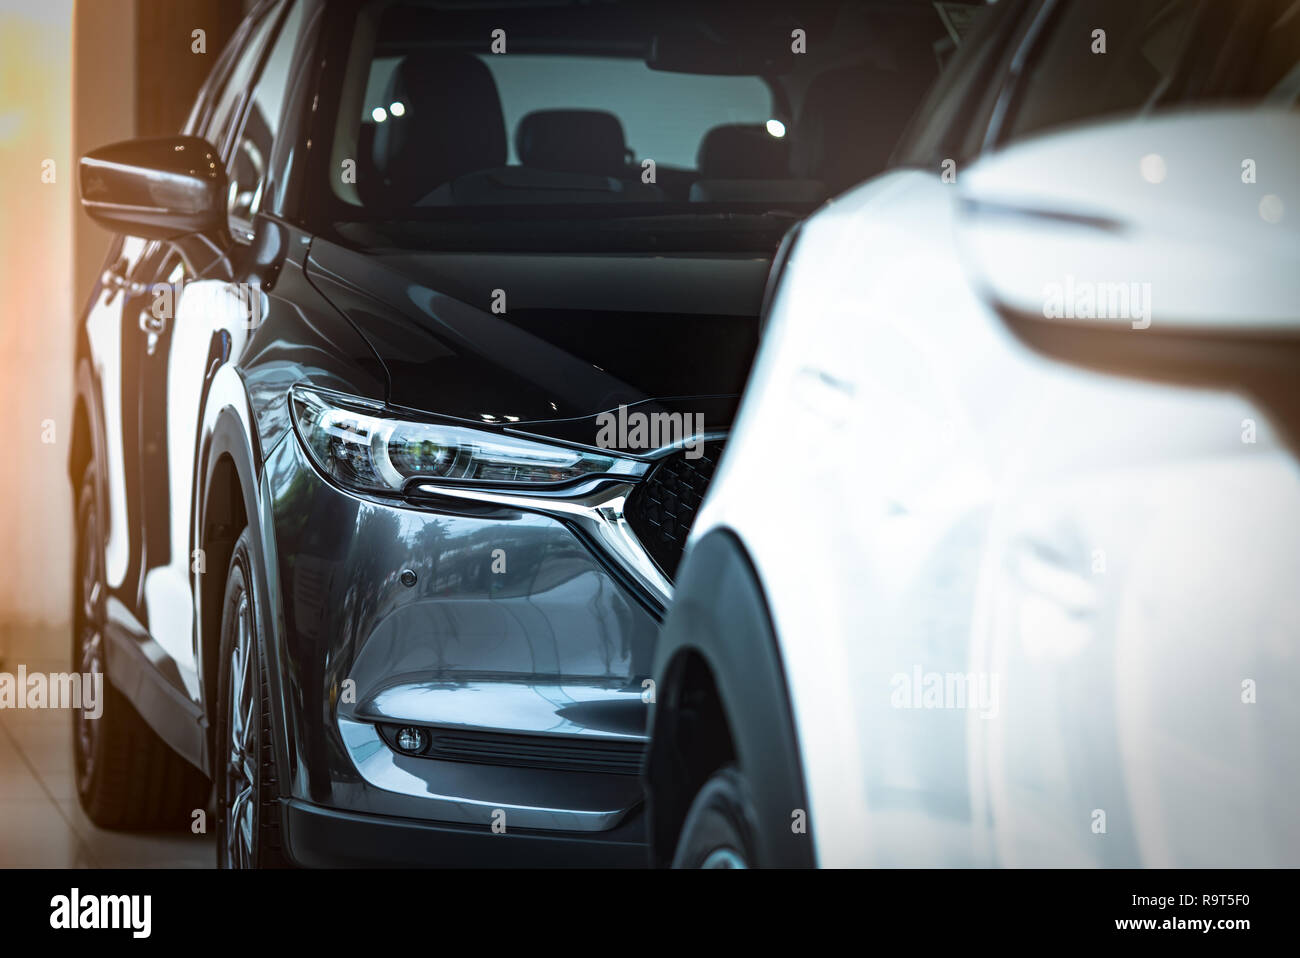 New luxury shiny SUV compact car parked in modern showroom. Car dealership office. Car retail shop. Electric car technology and business concept. Auto - Stock Image